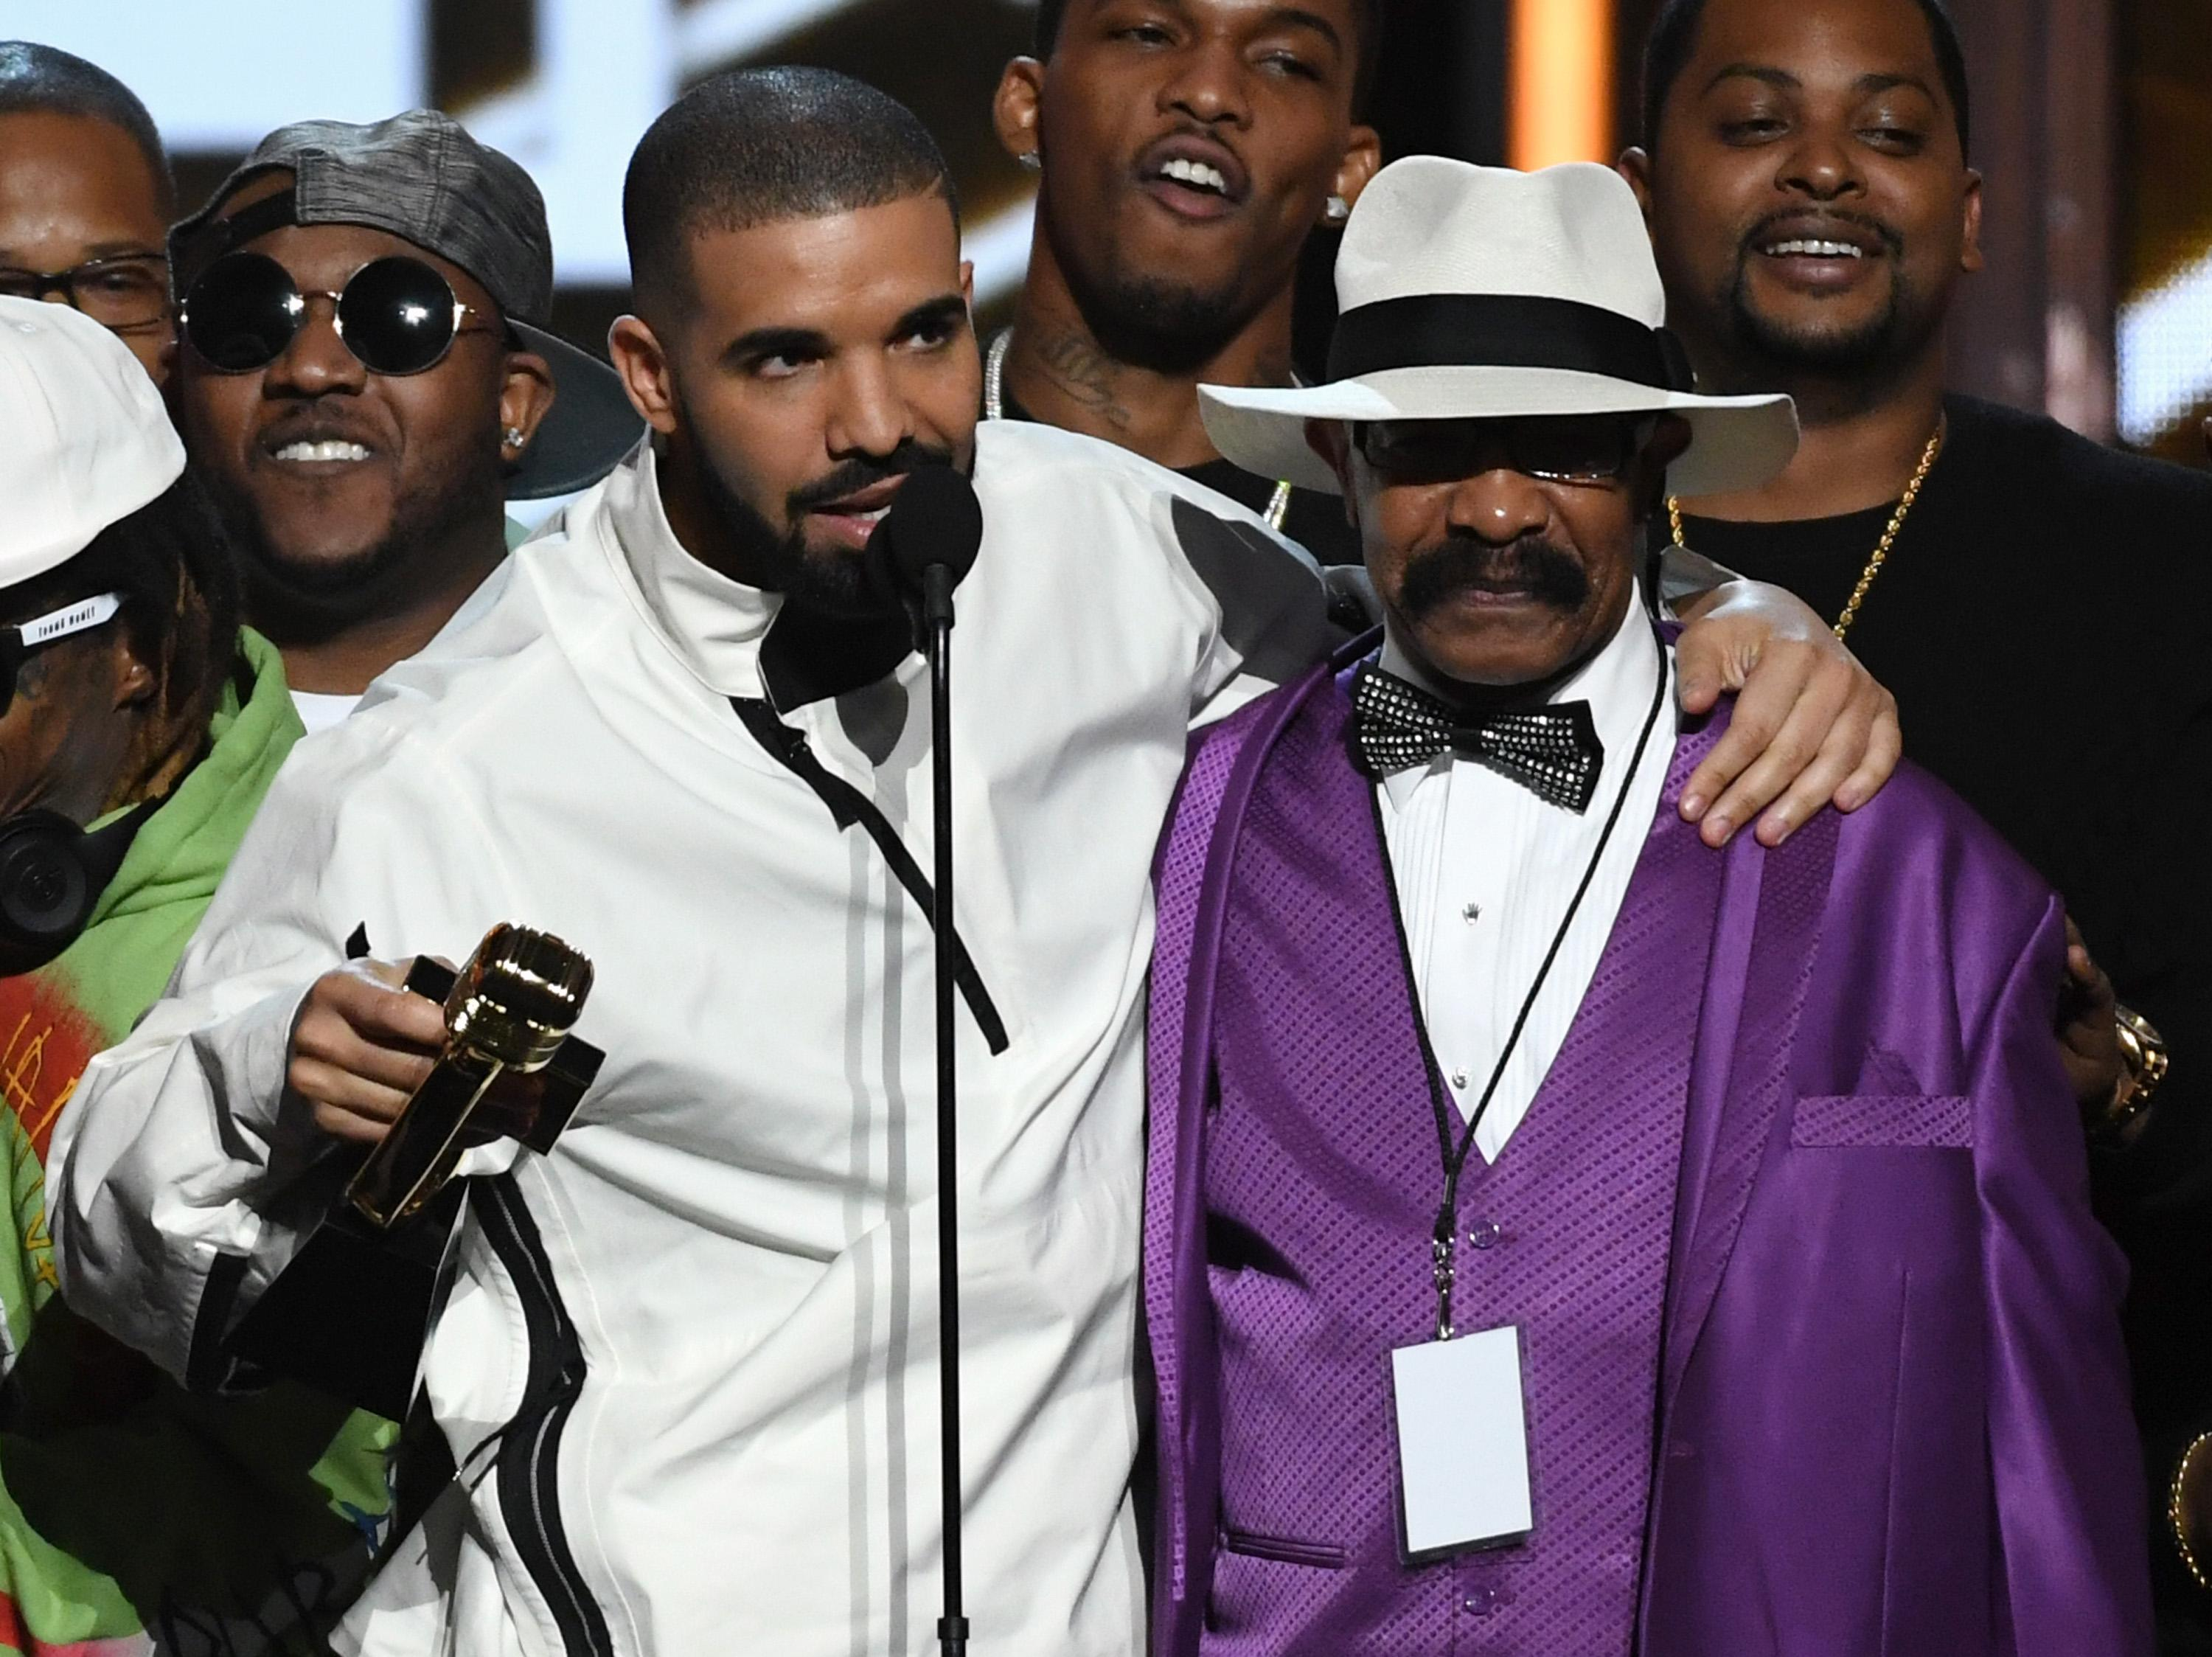 Drake responds after dad says rapper made up absentee father claims to sell records: 'So hurt' - Yahoo Entertainment